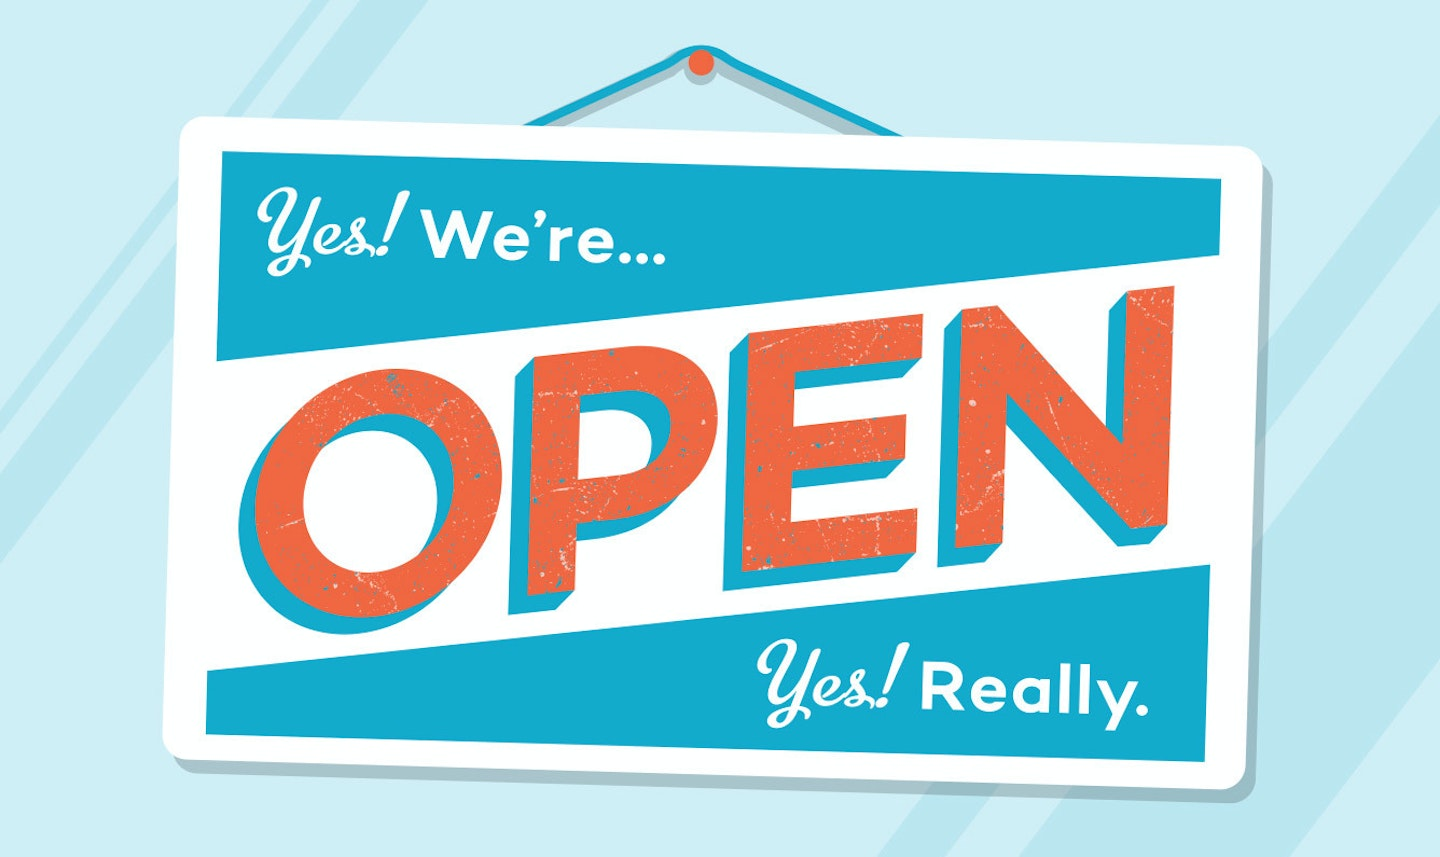 Yes! We're open window sign